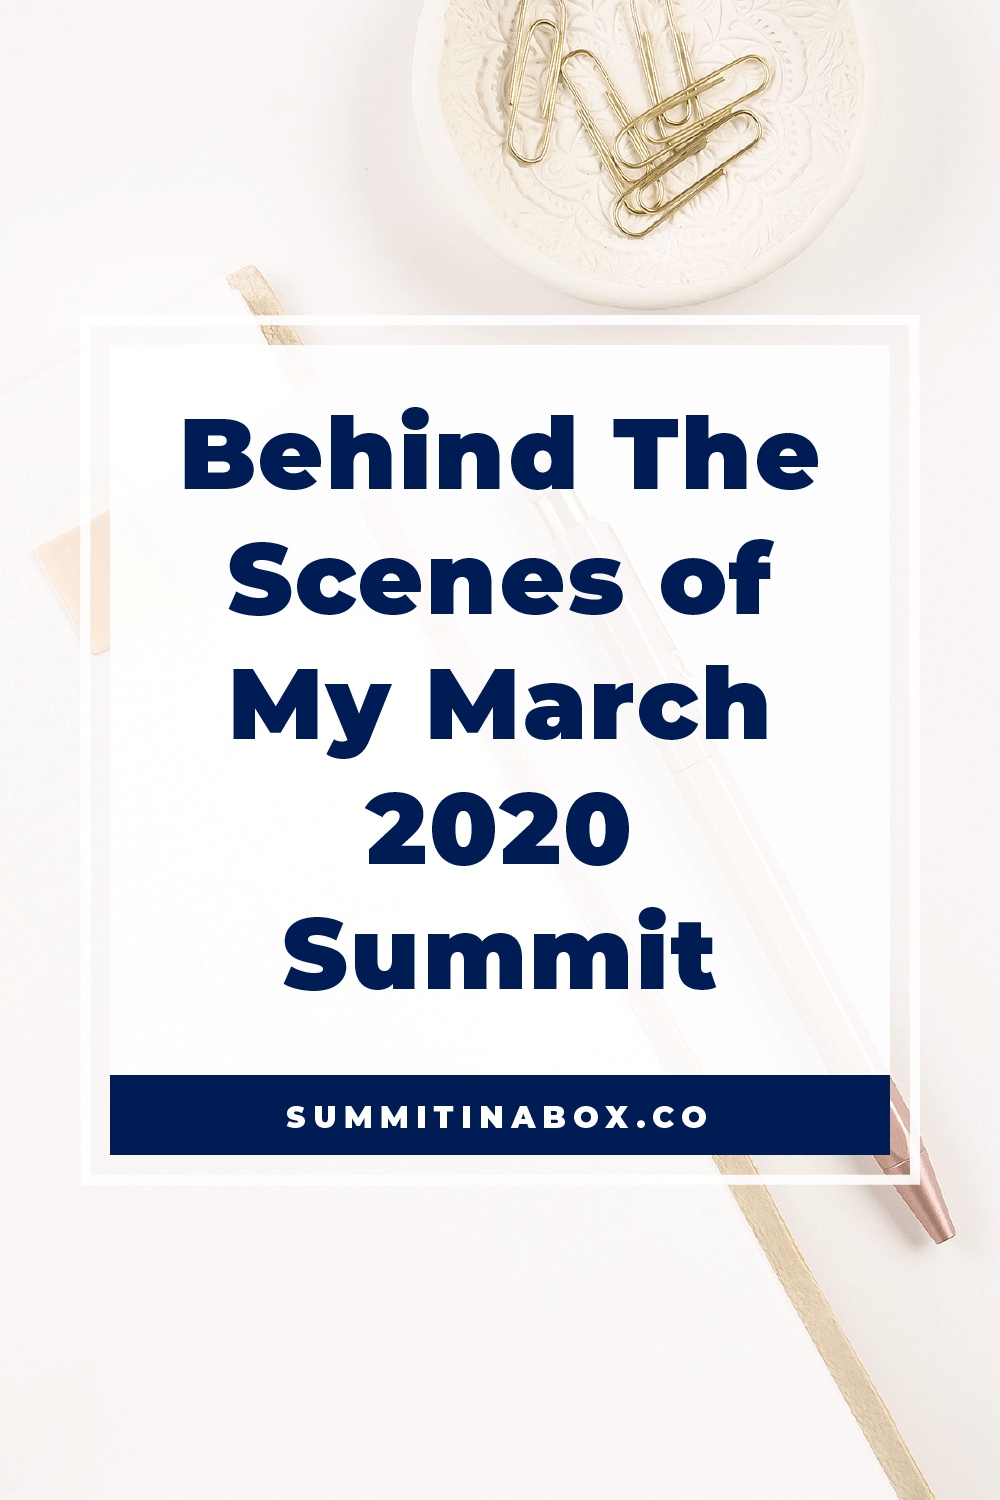 Come behind the scenes and learn about all the details that went into my 4th virtual summit!